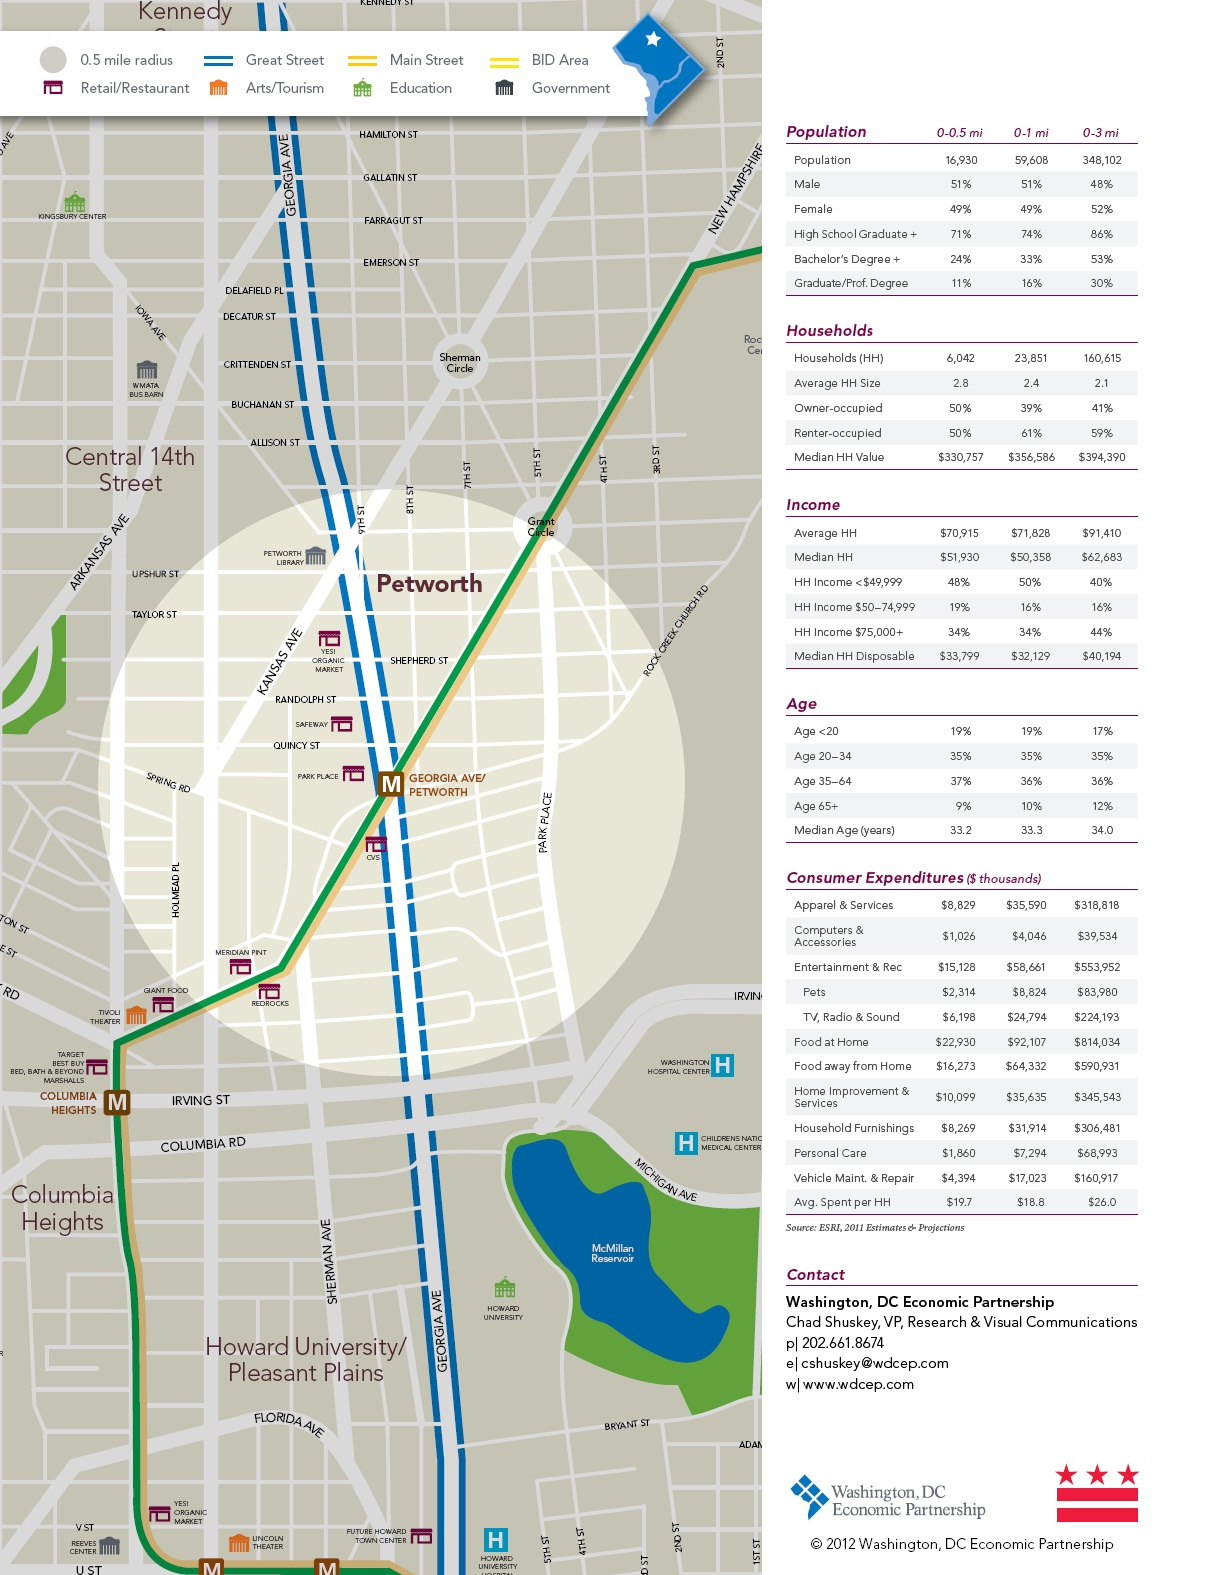 Petworth Dc Map.Washington Dc Economic Partnership Erases Park View From 2012